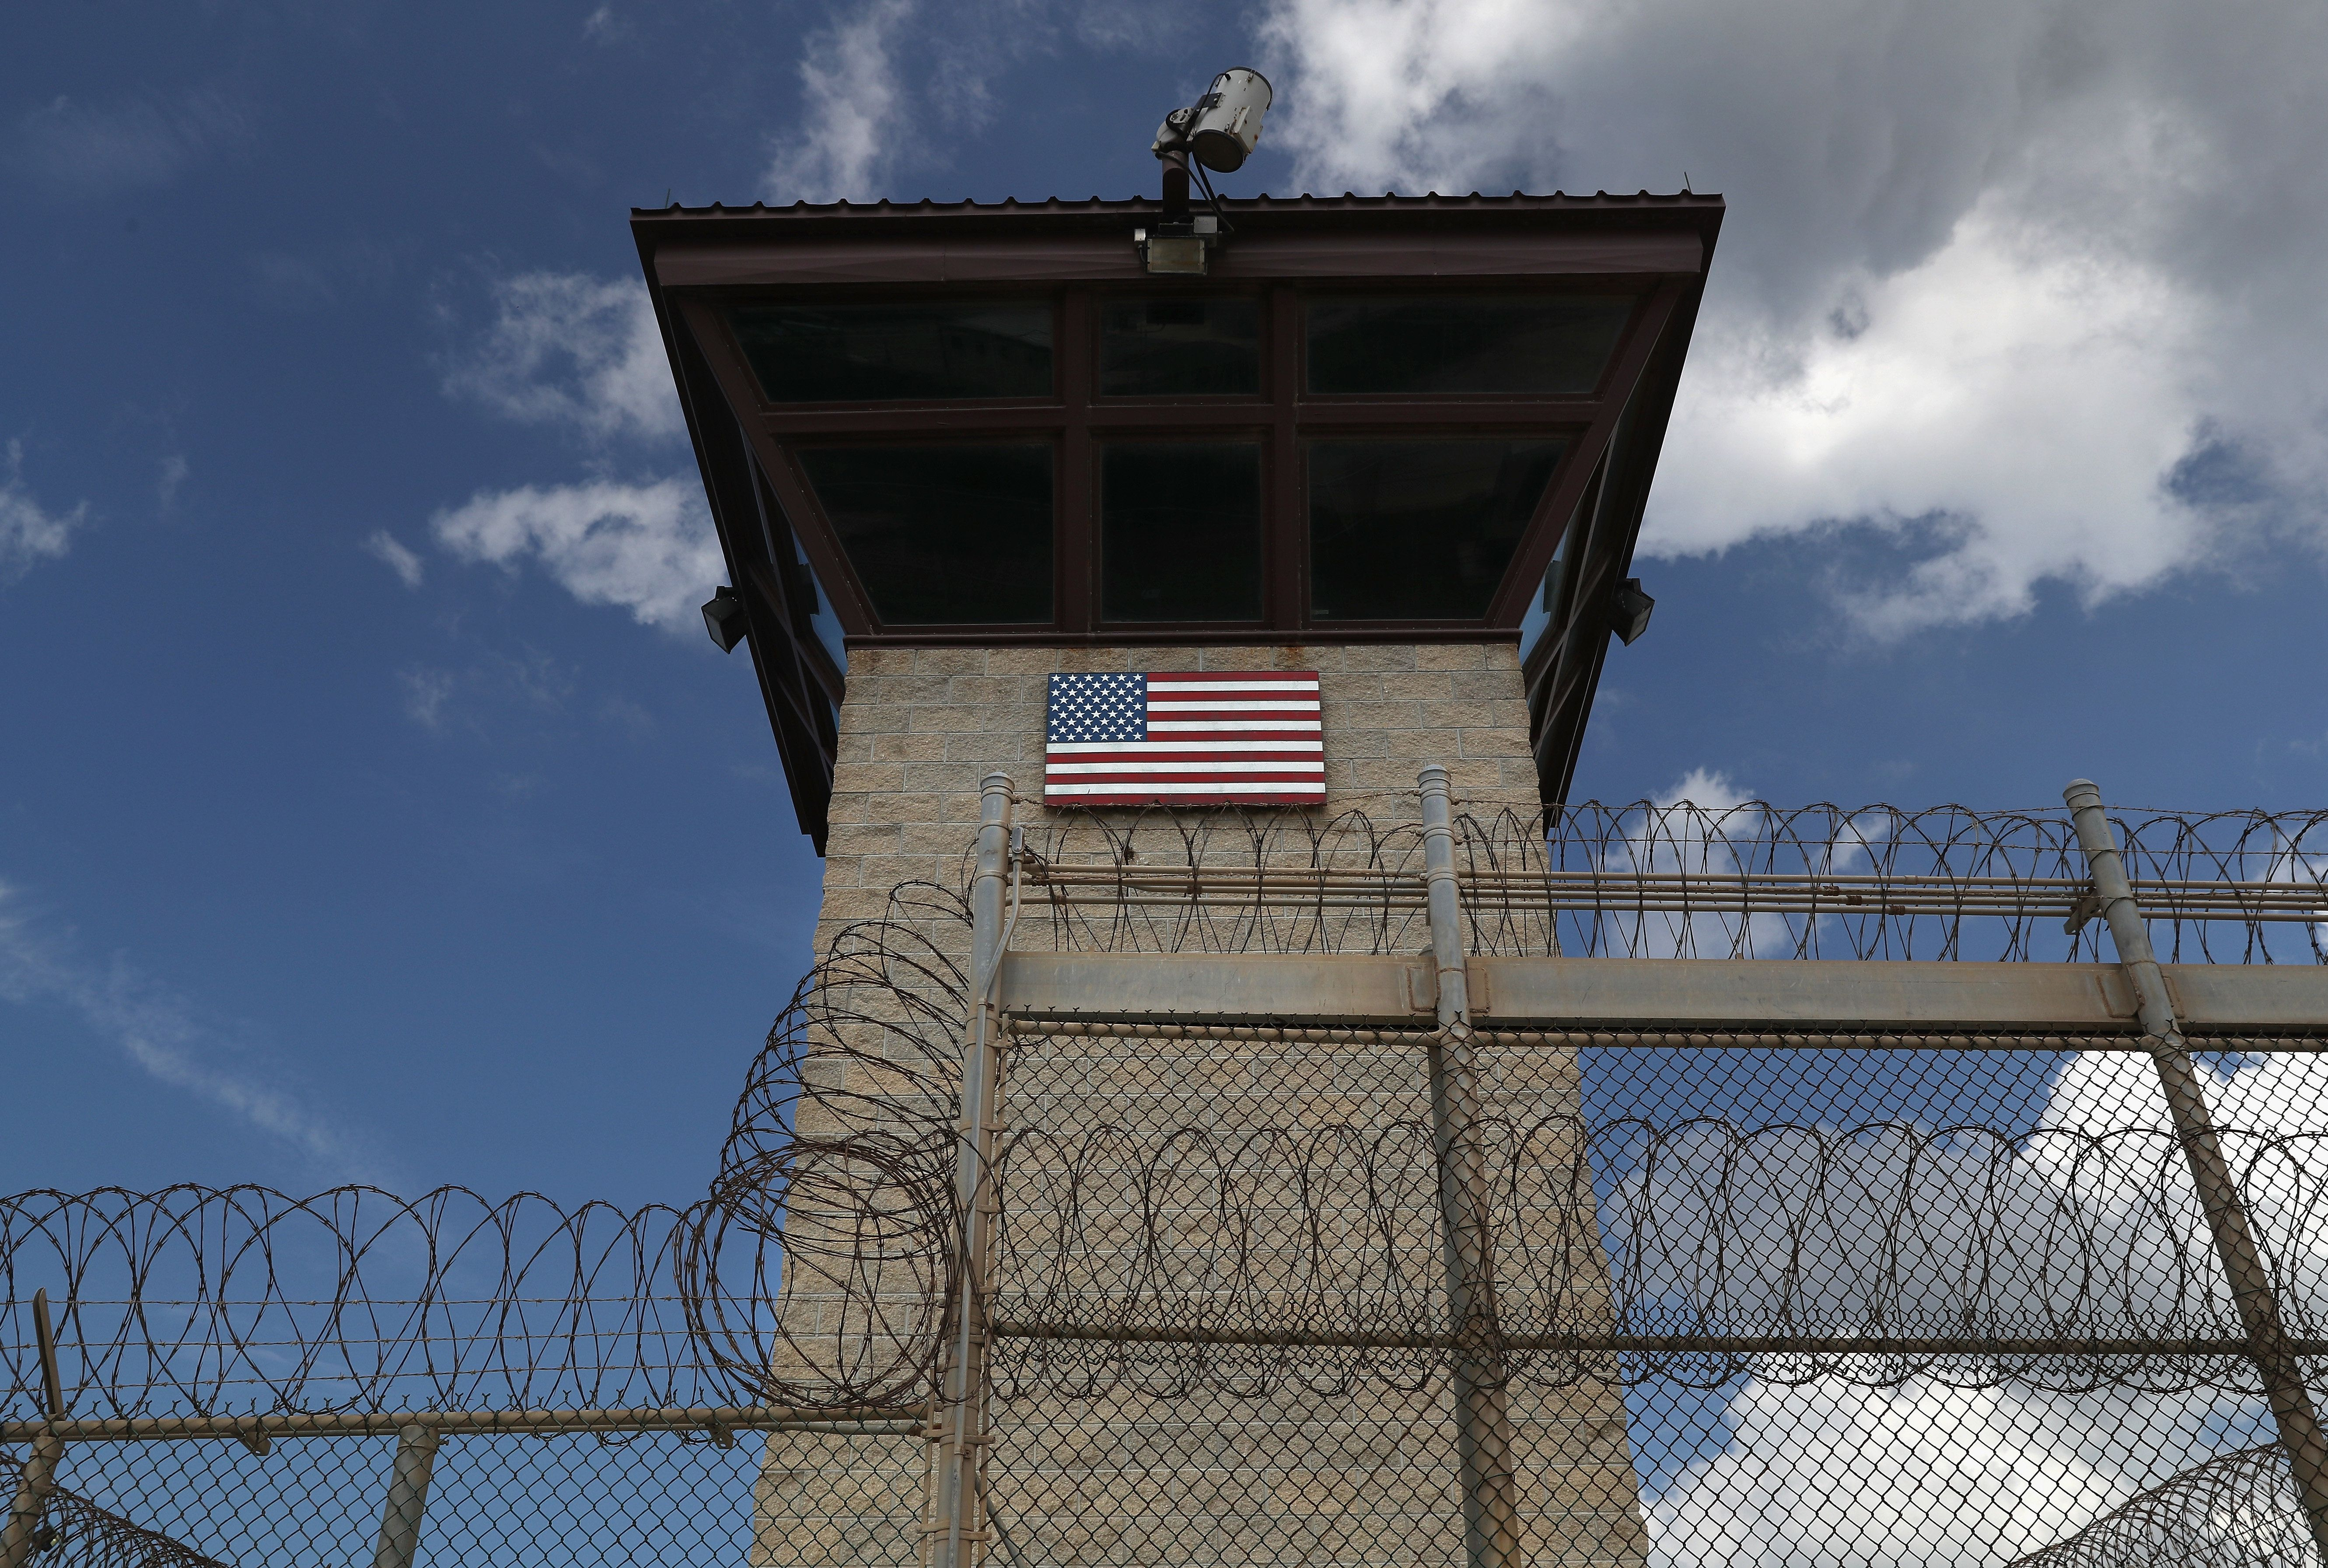 Four detainees are expected to be transferredto Saudi Arabia from the Guantanamo Bay military prison...